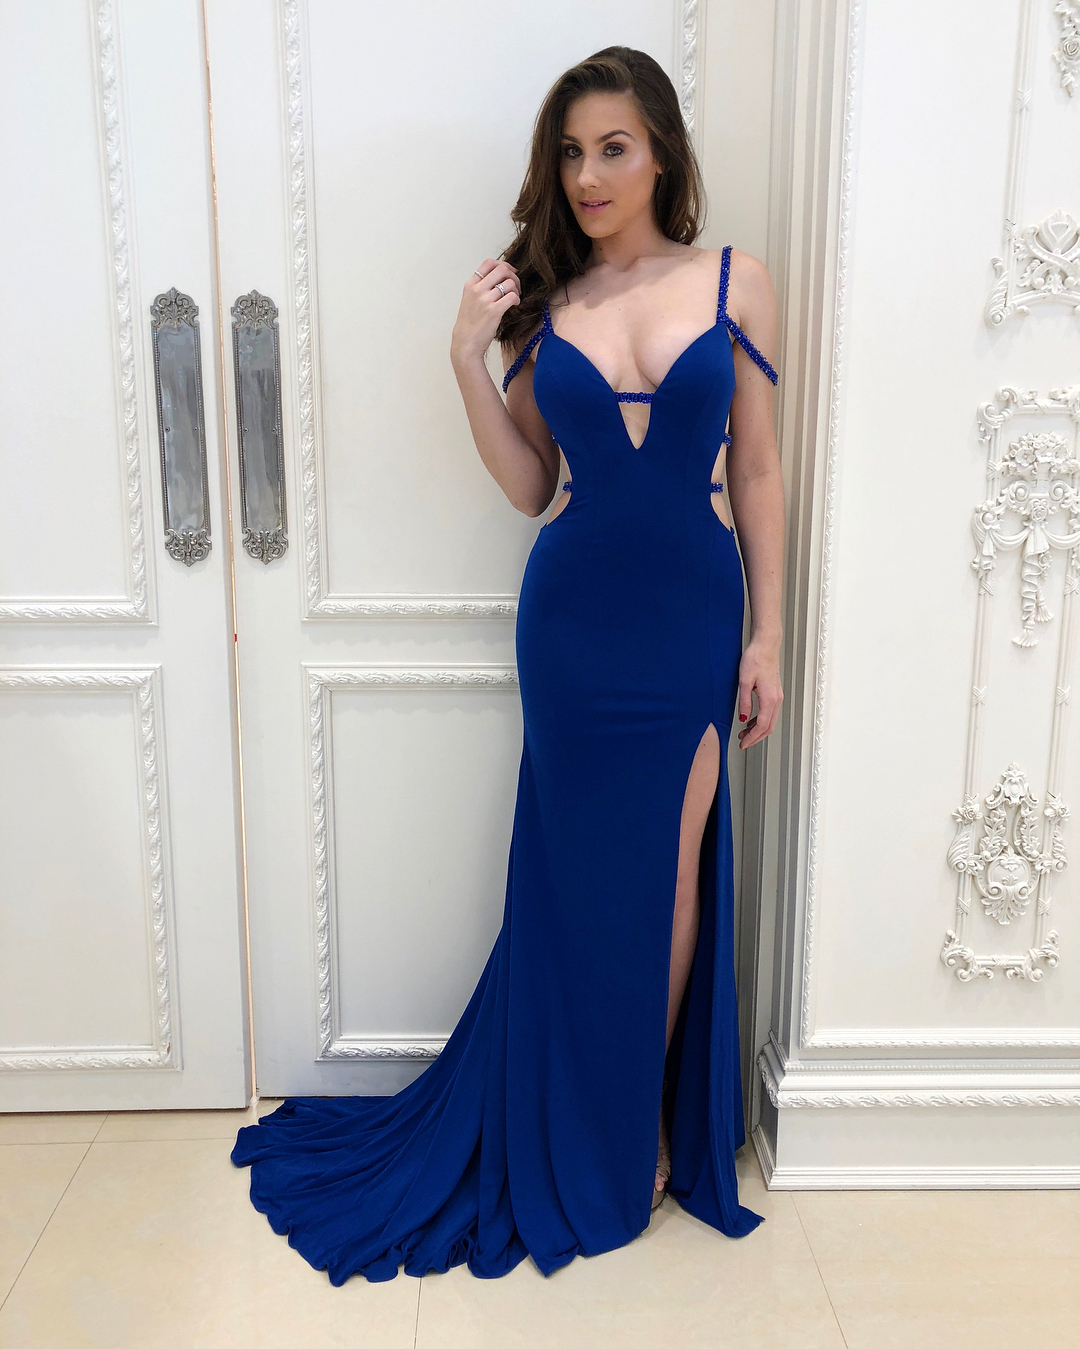 b074c40a6d3 Sexy Prom Dress Royal Blue Prom Dresses Mermaid Open Back Evening Dress  Formal Dress on Storenvy